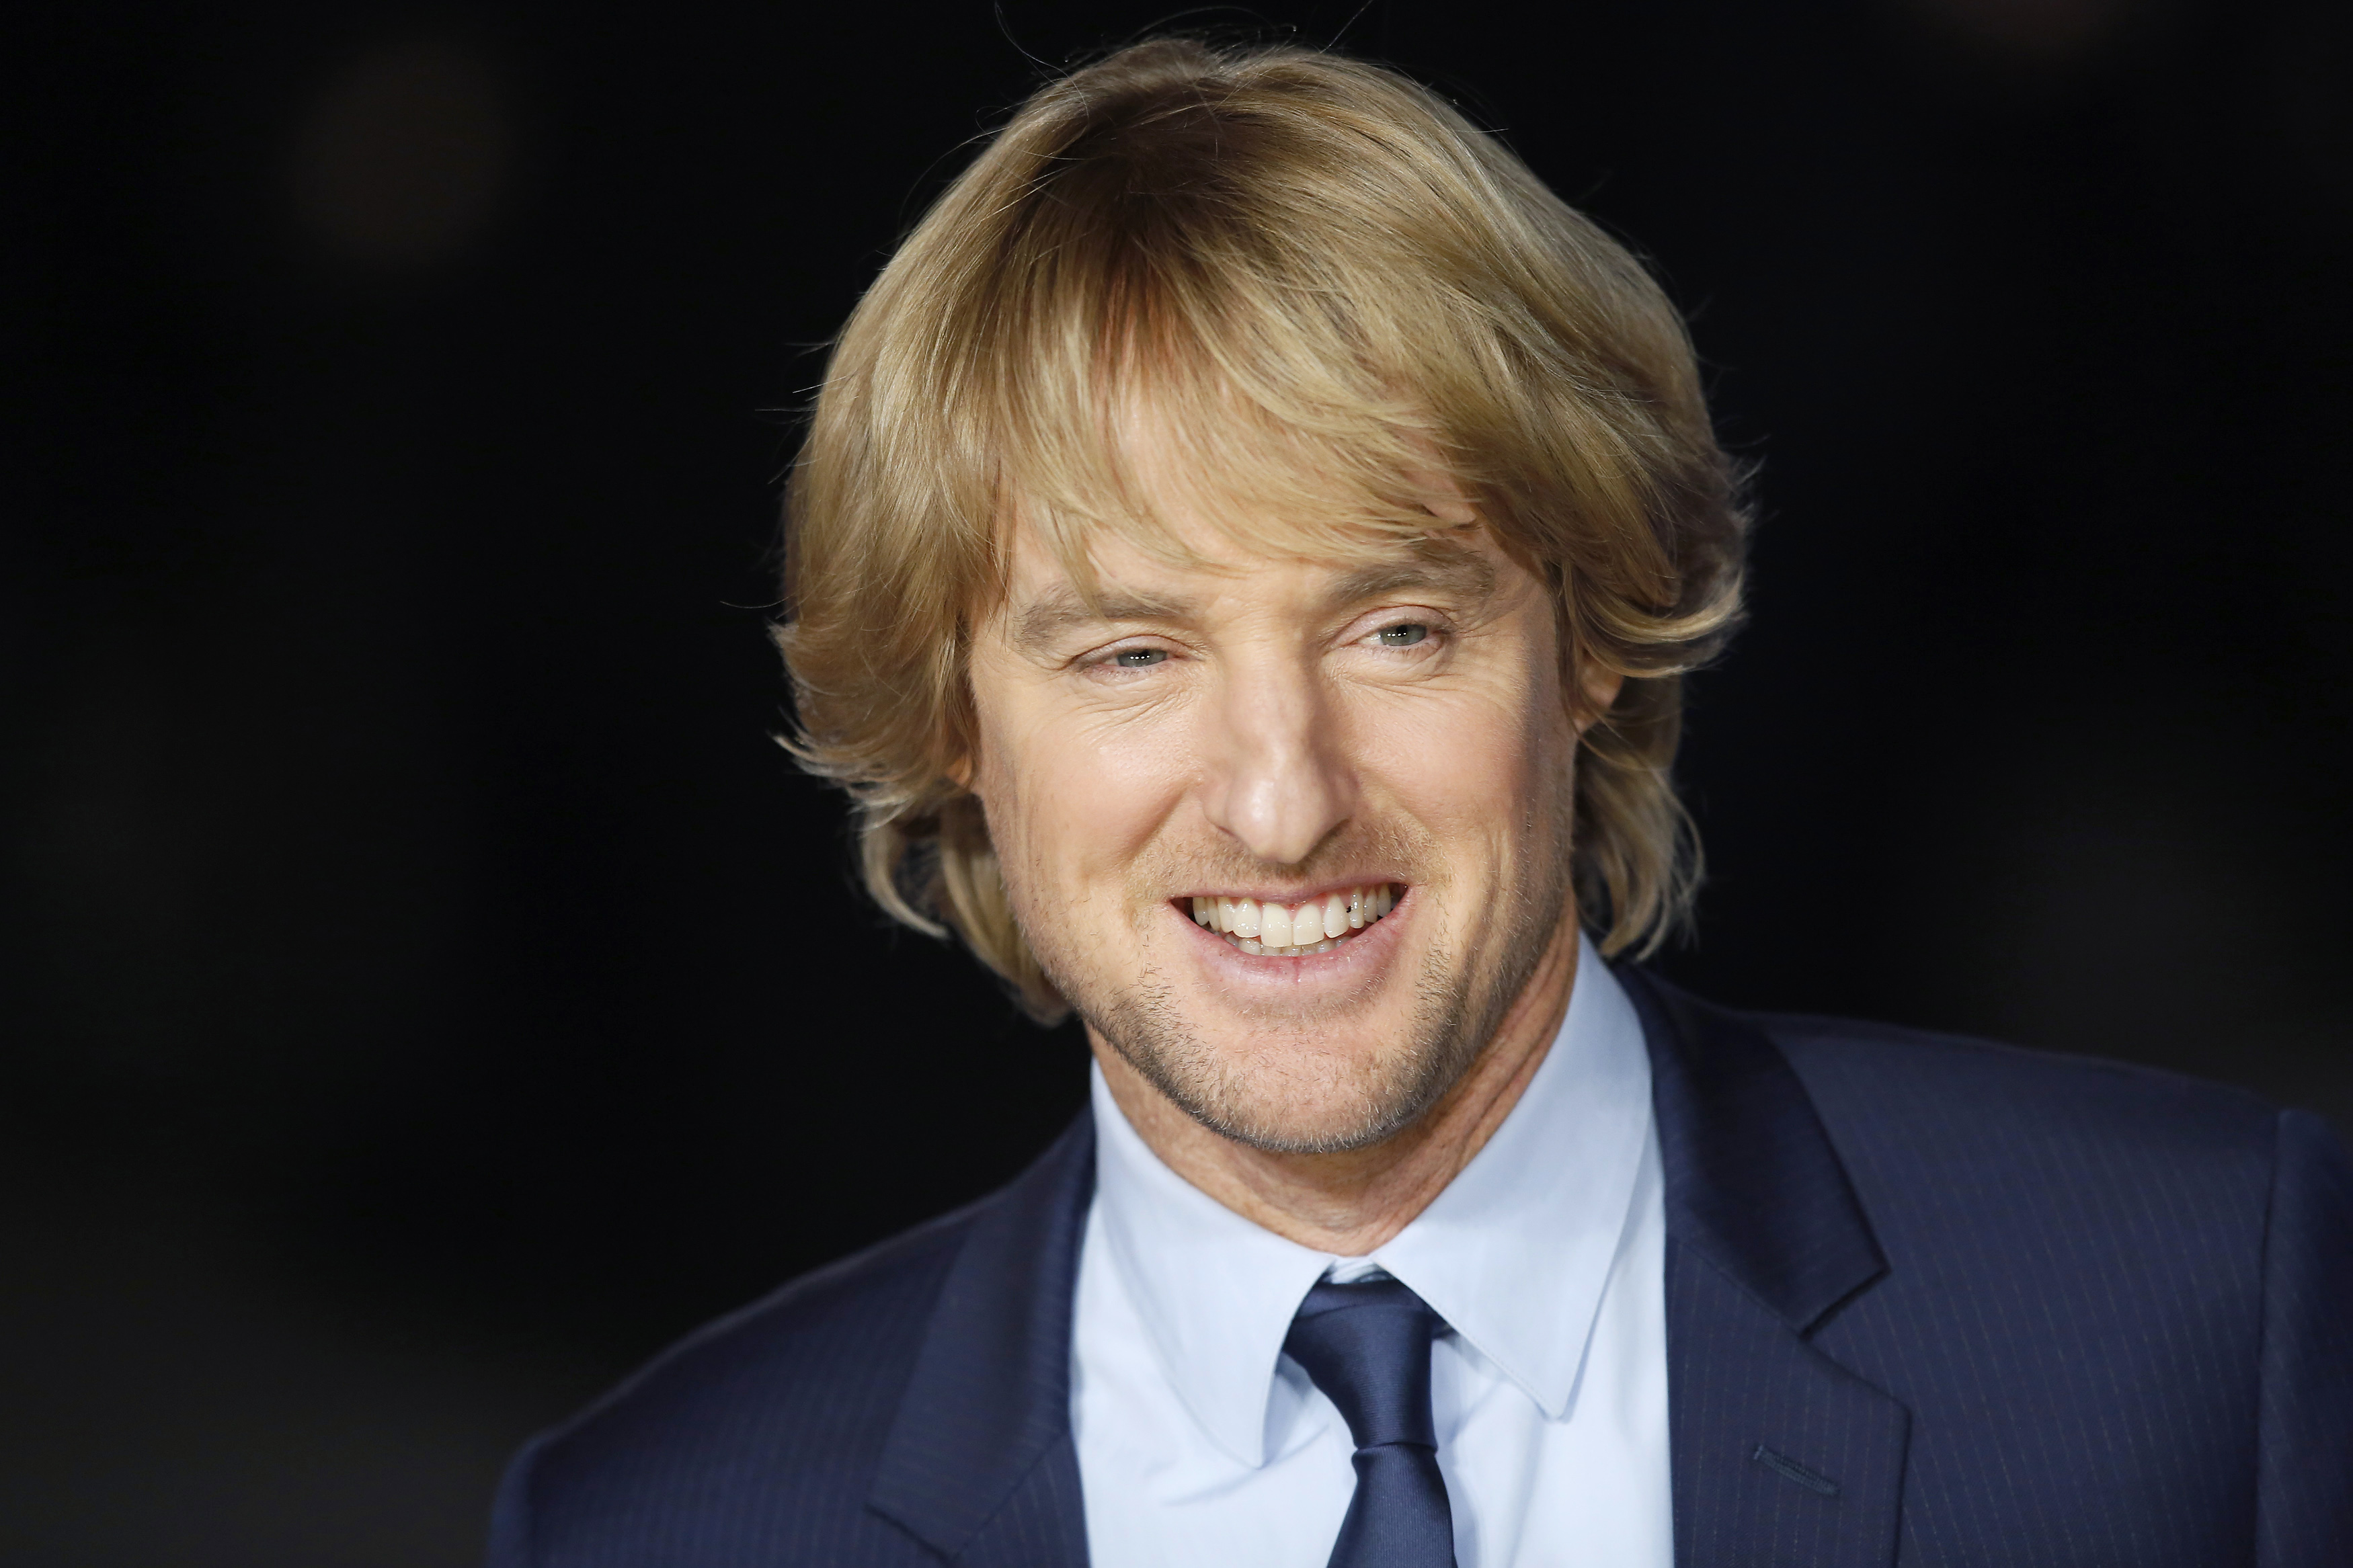 Actor Owen Wilson arrives for the European premiere of  Night at the Museum: Secret of the Tomb  at Leicester Square in London December 15, 2014.